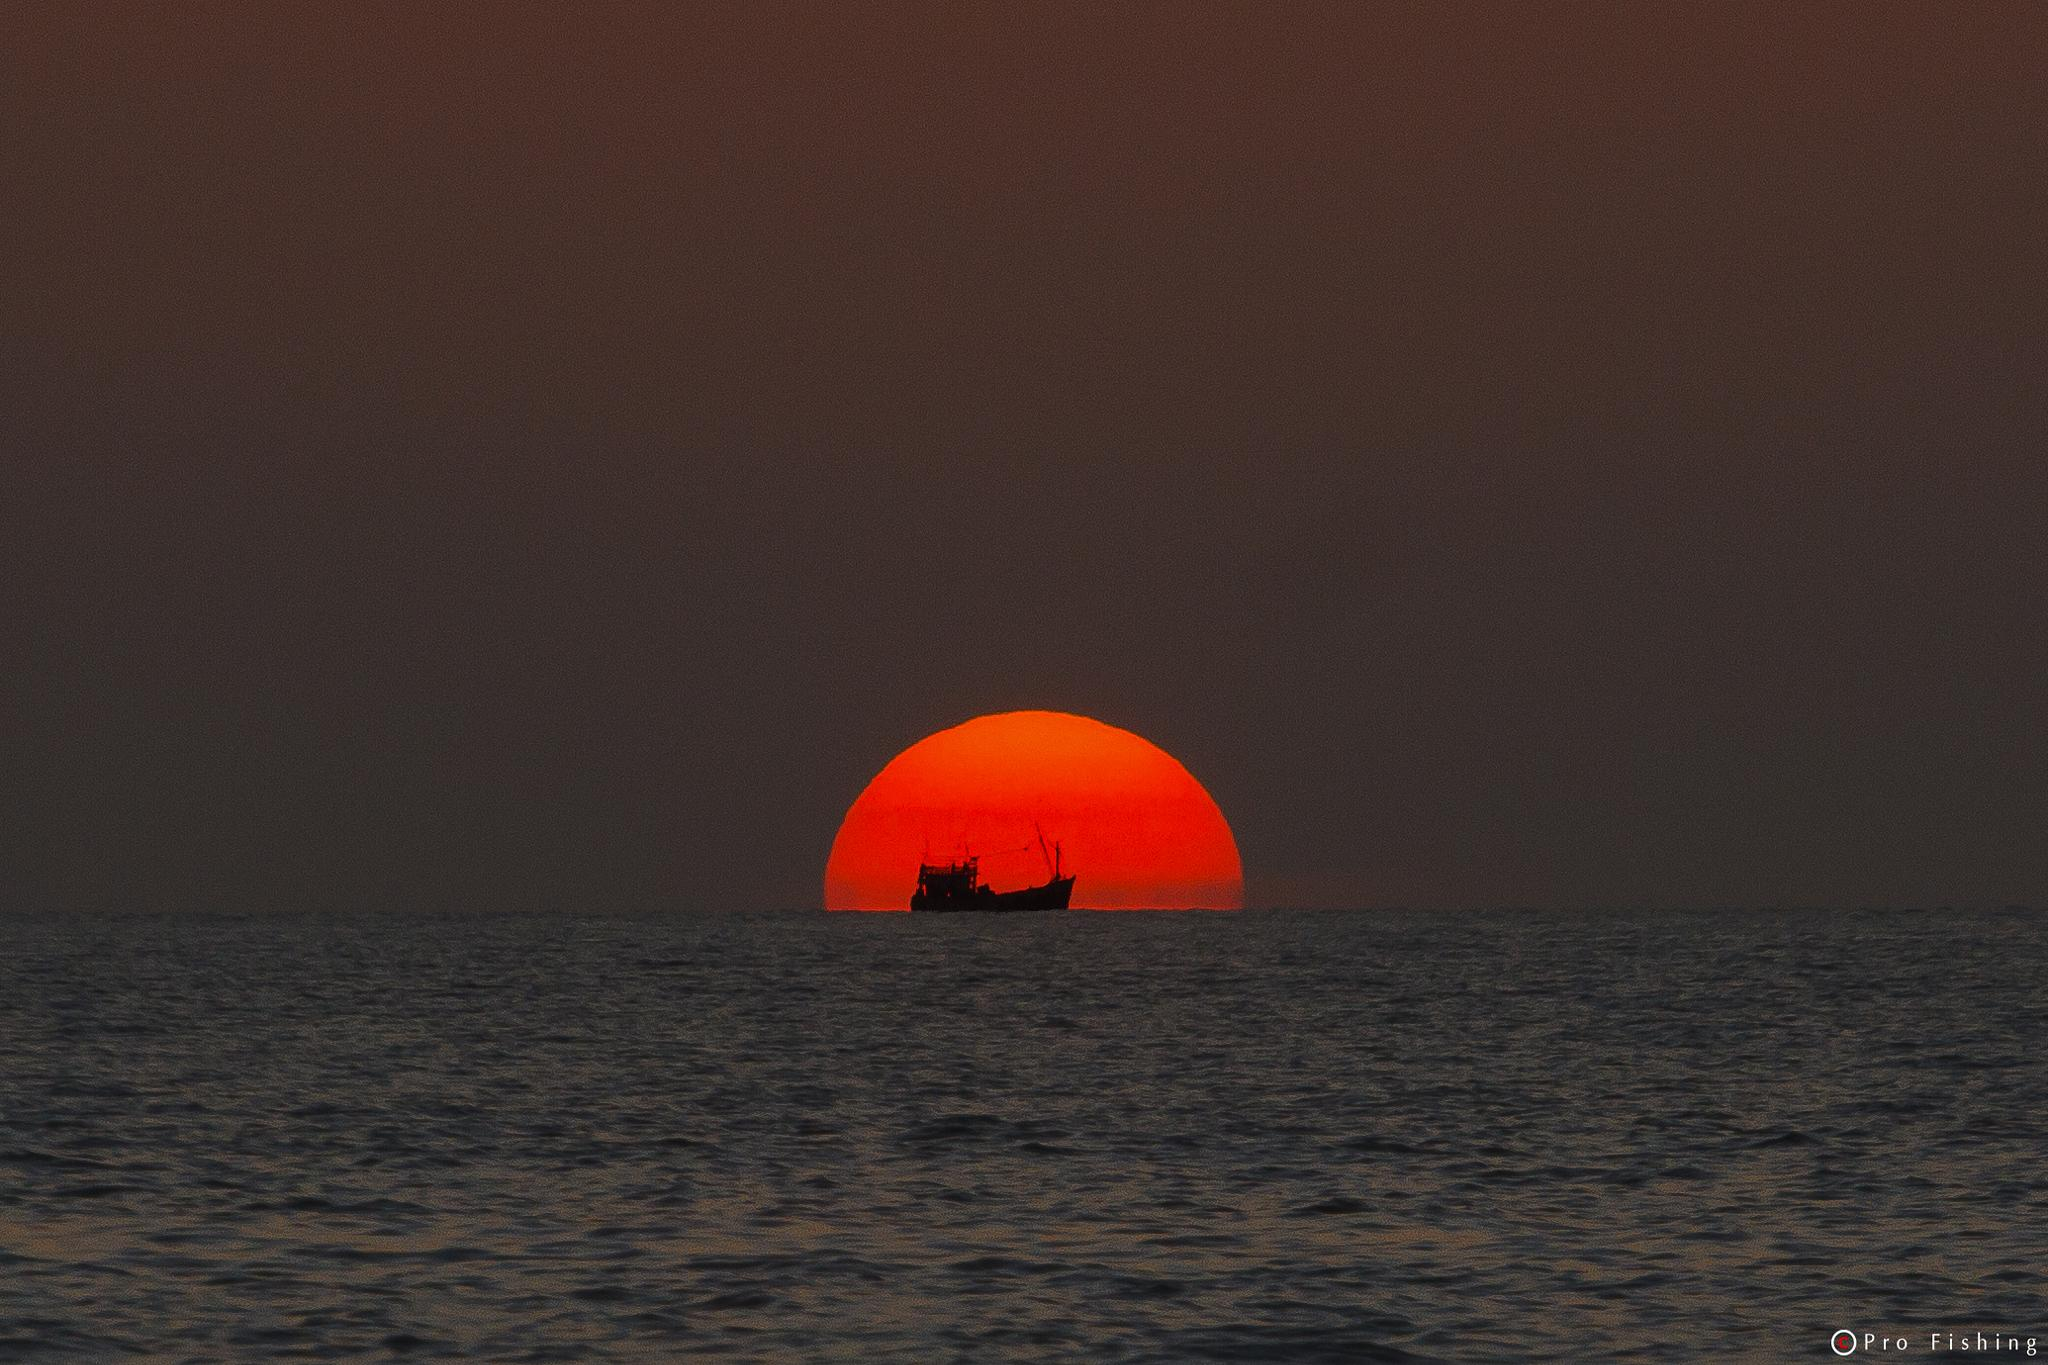 Sunset today by Pro Fishing Photographer